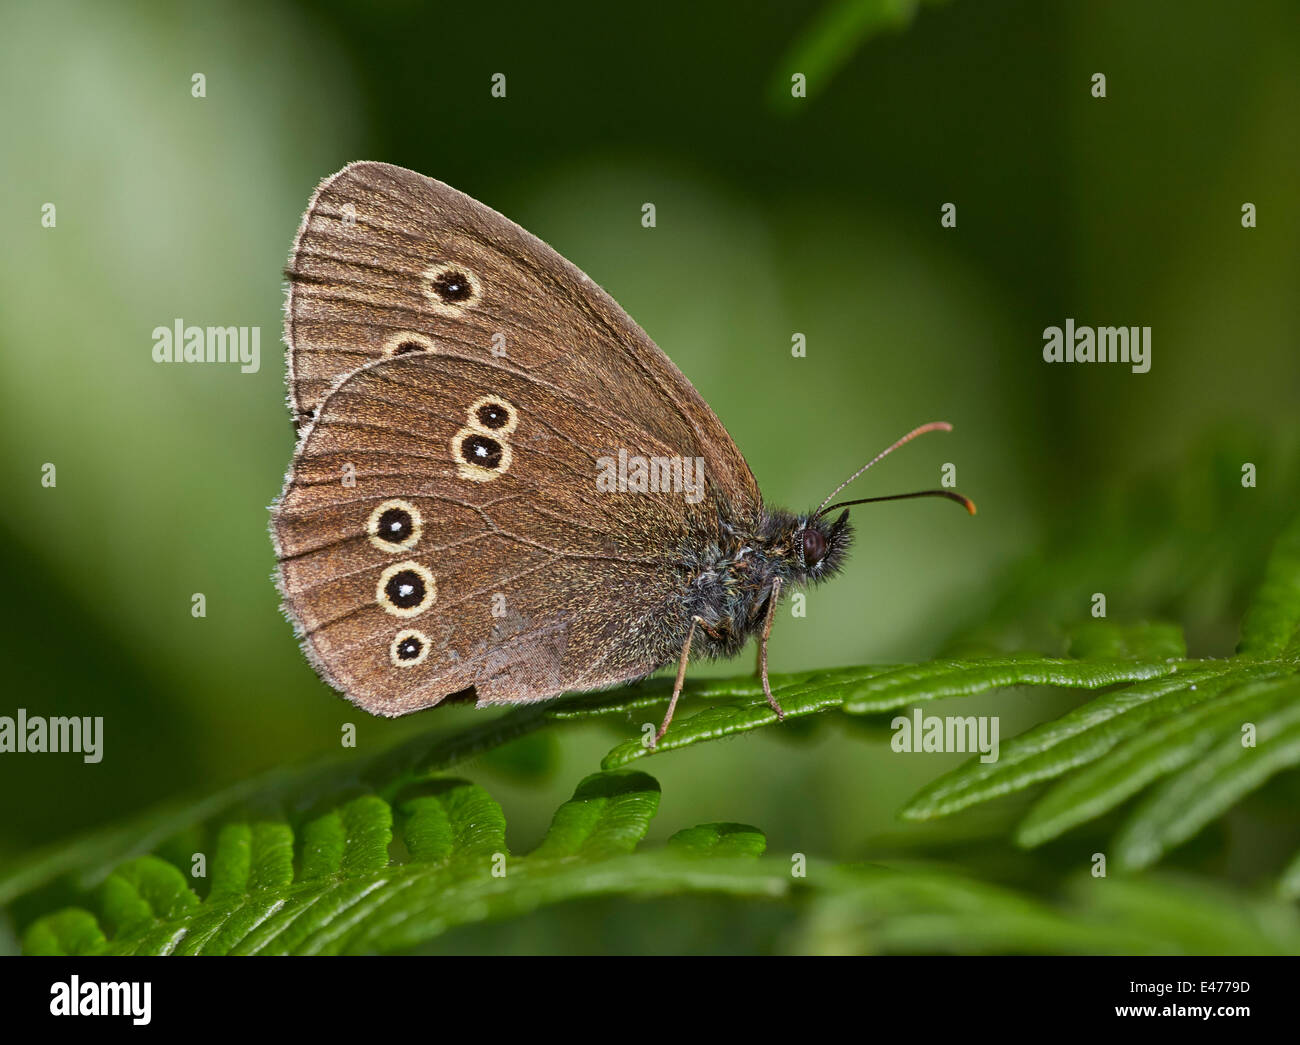 Ringlet butterfly resting on a fern. Bookham Common, Surrey, England. - Stock Image